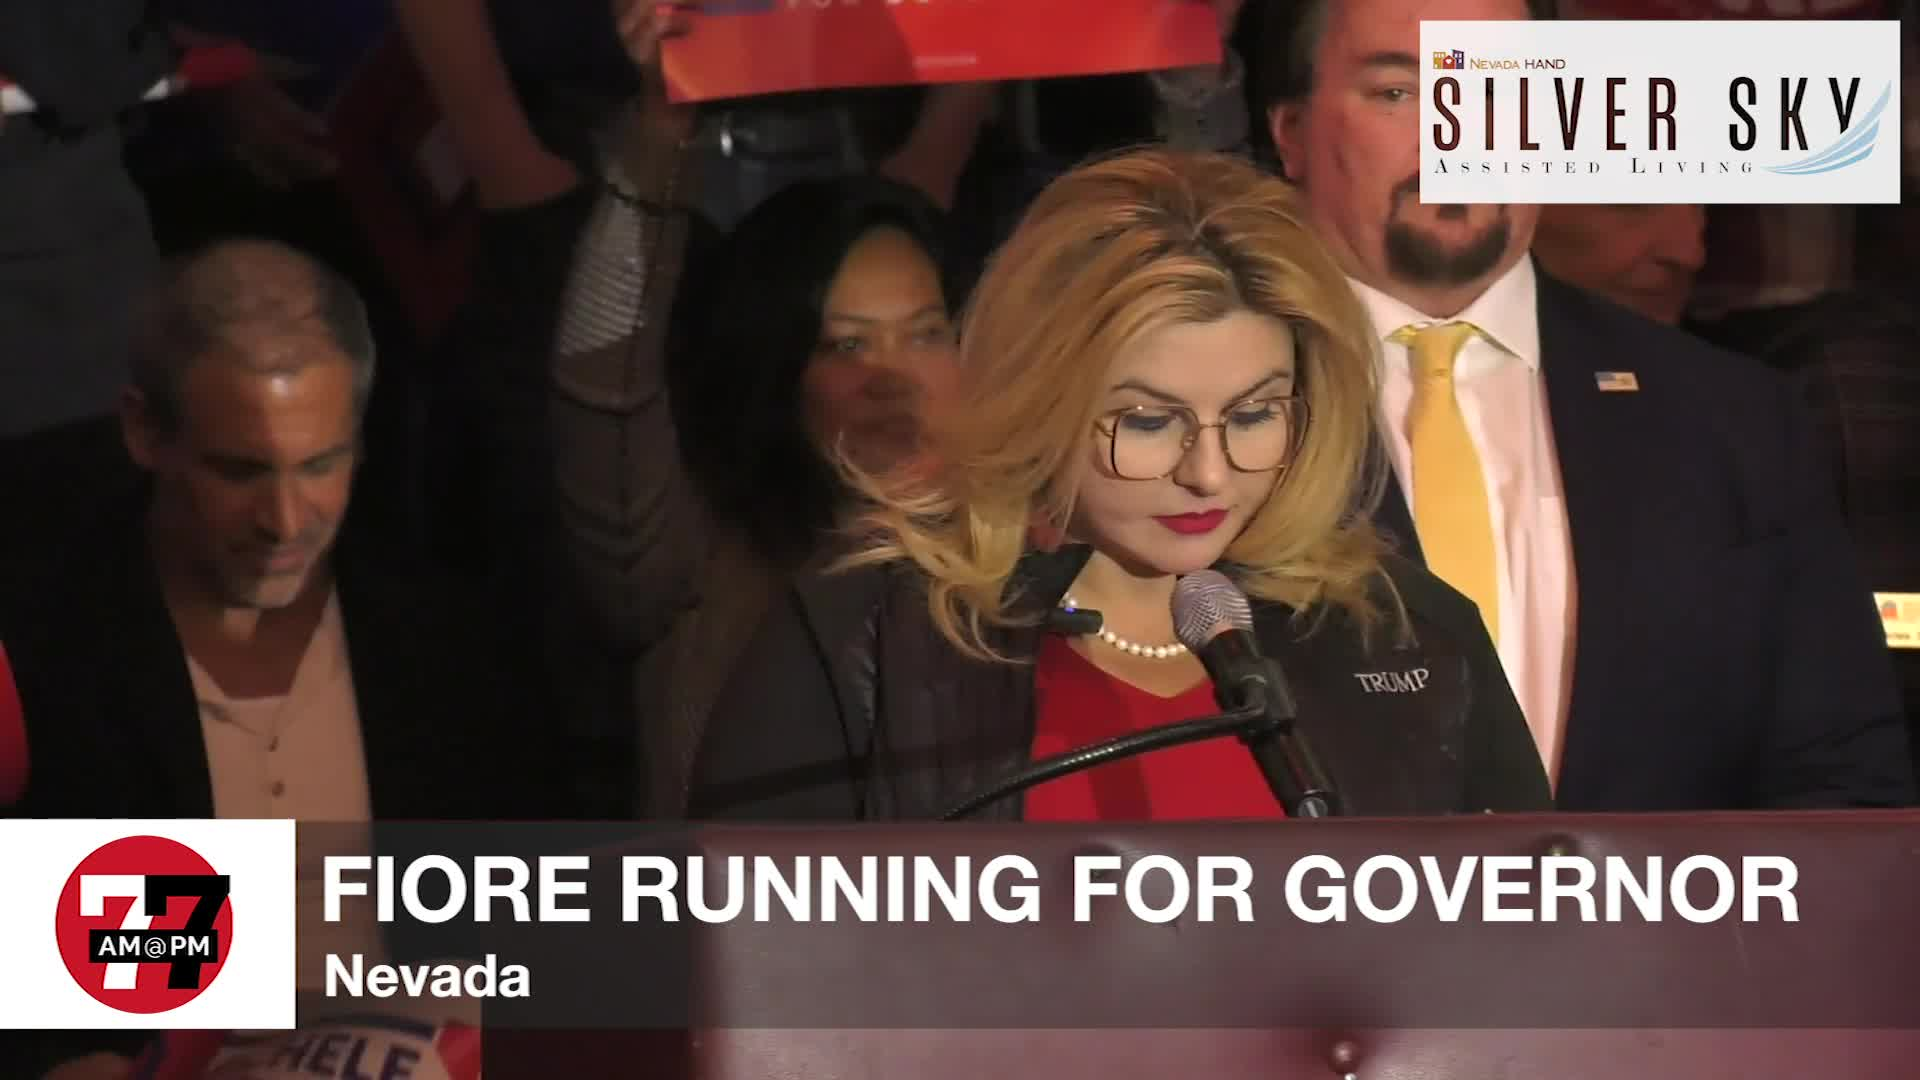 7@7PM Fiore Running for Governor